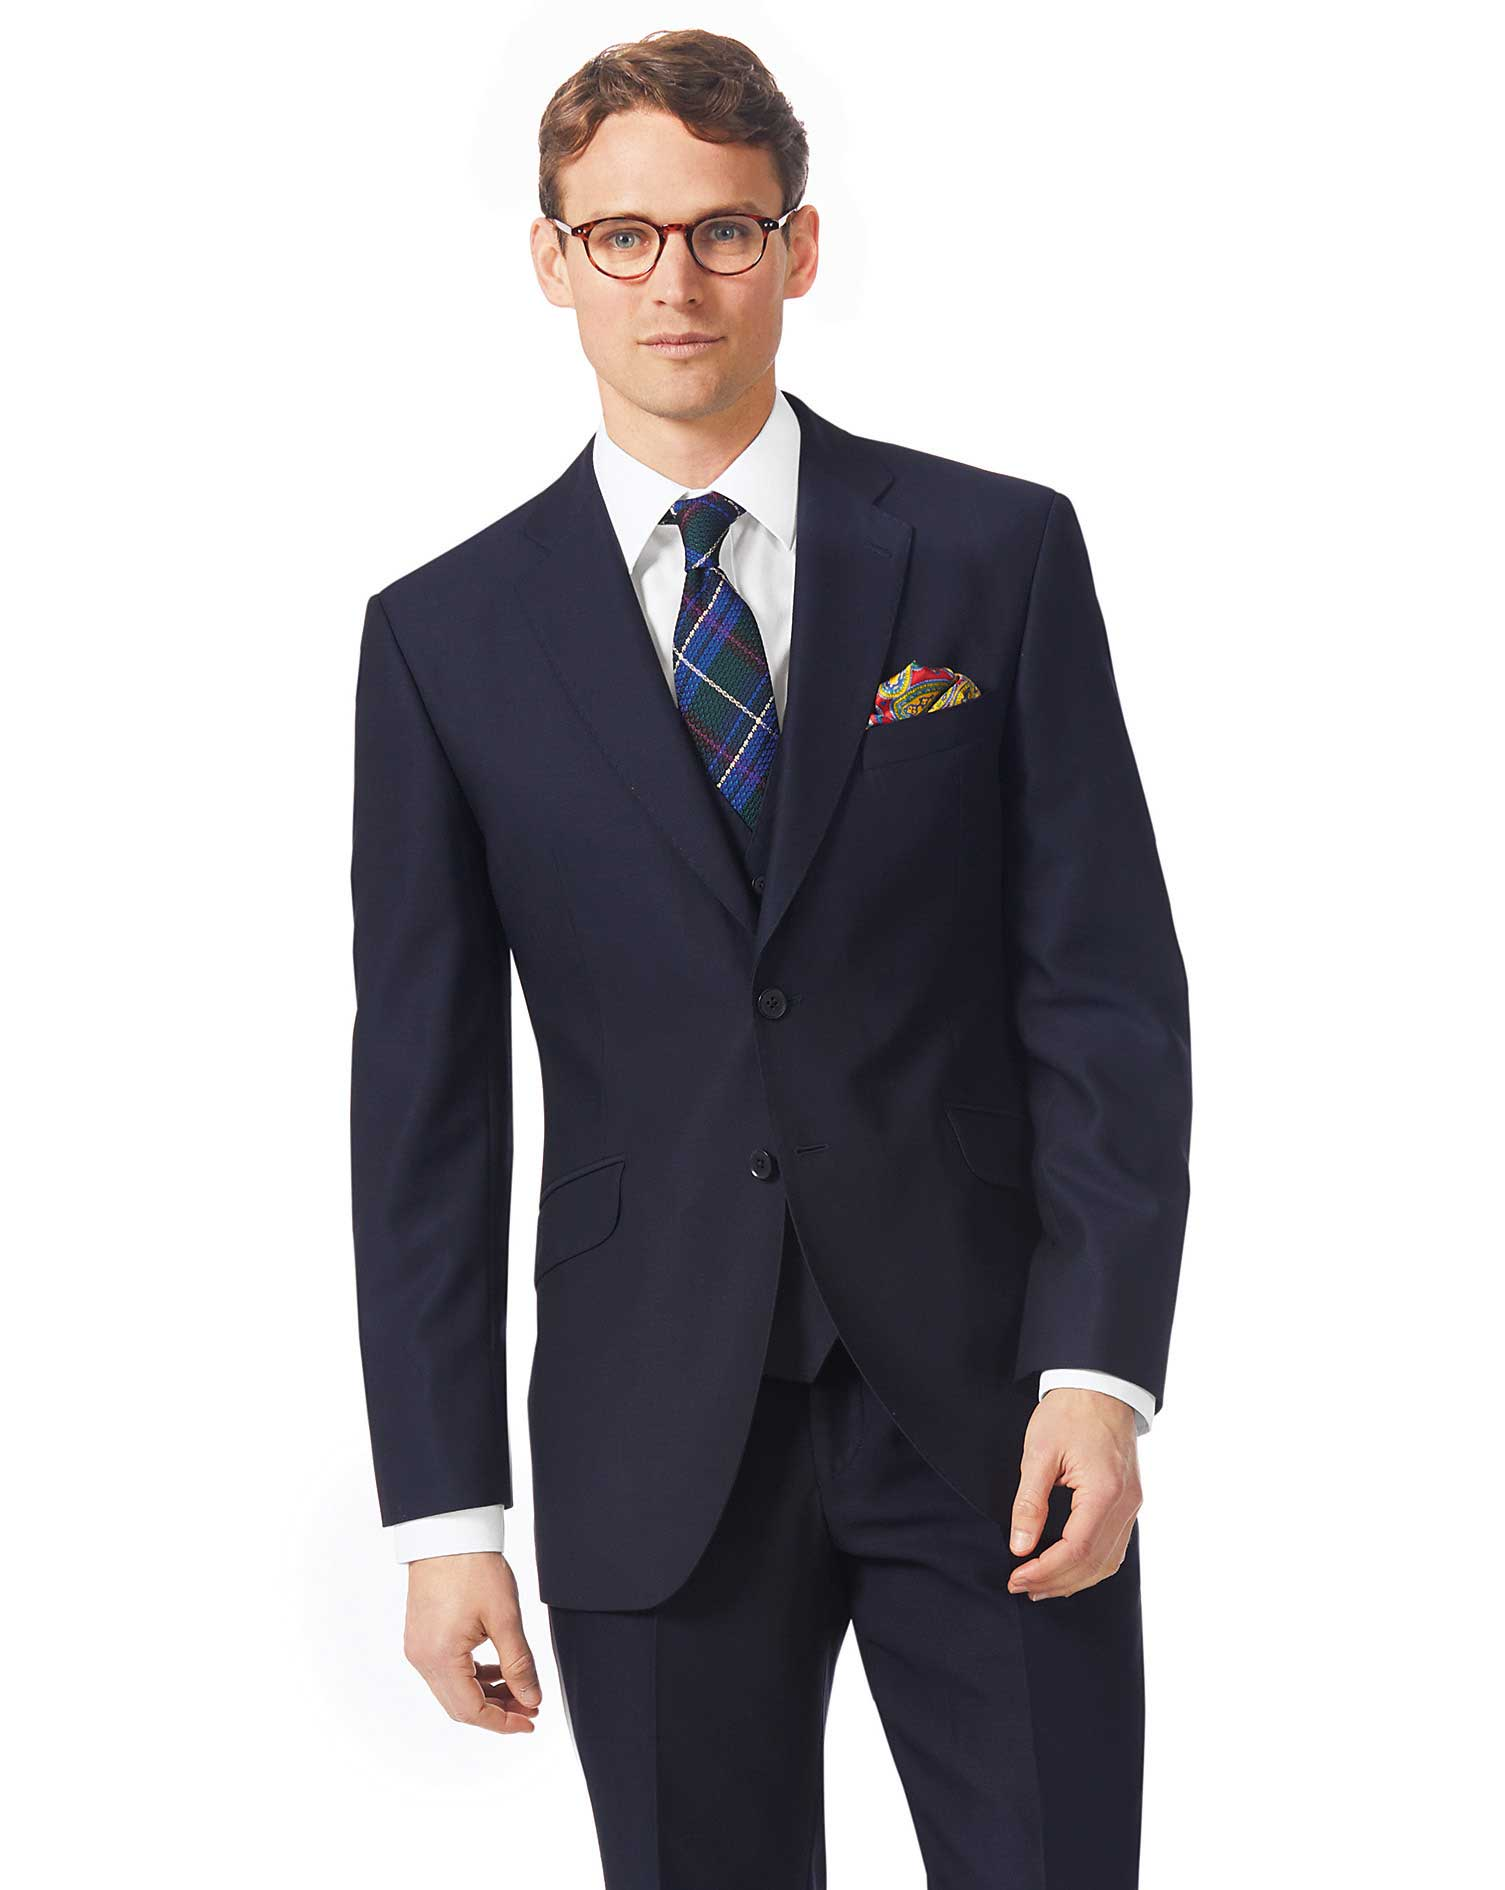 Navy Classic Fit Textured Italian Suit Wool Jacket Size 42 Regular by Charles Tyrwhitt